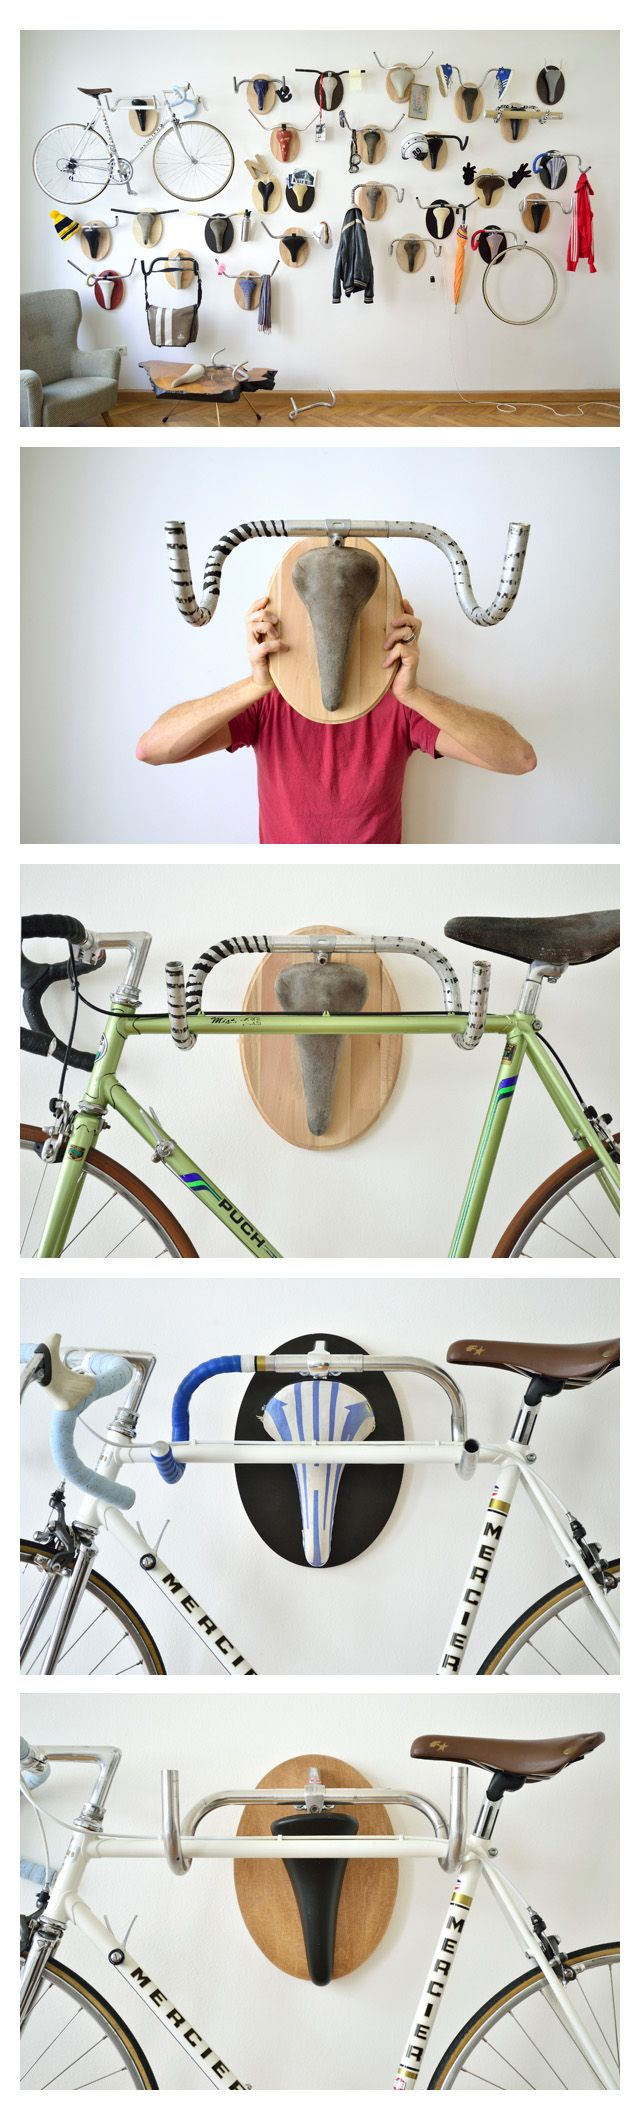 A bikes bar and seat as a current bike (or anything) rack!  #zerowaste #recycle #upcycle sustainable #goedbezig